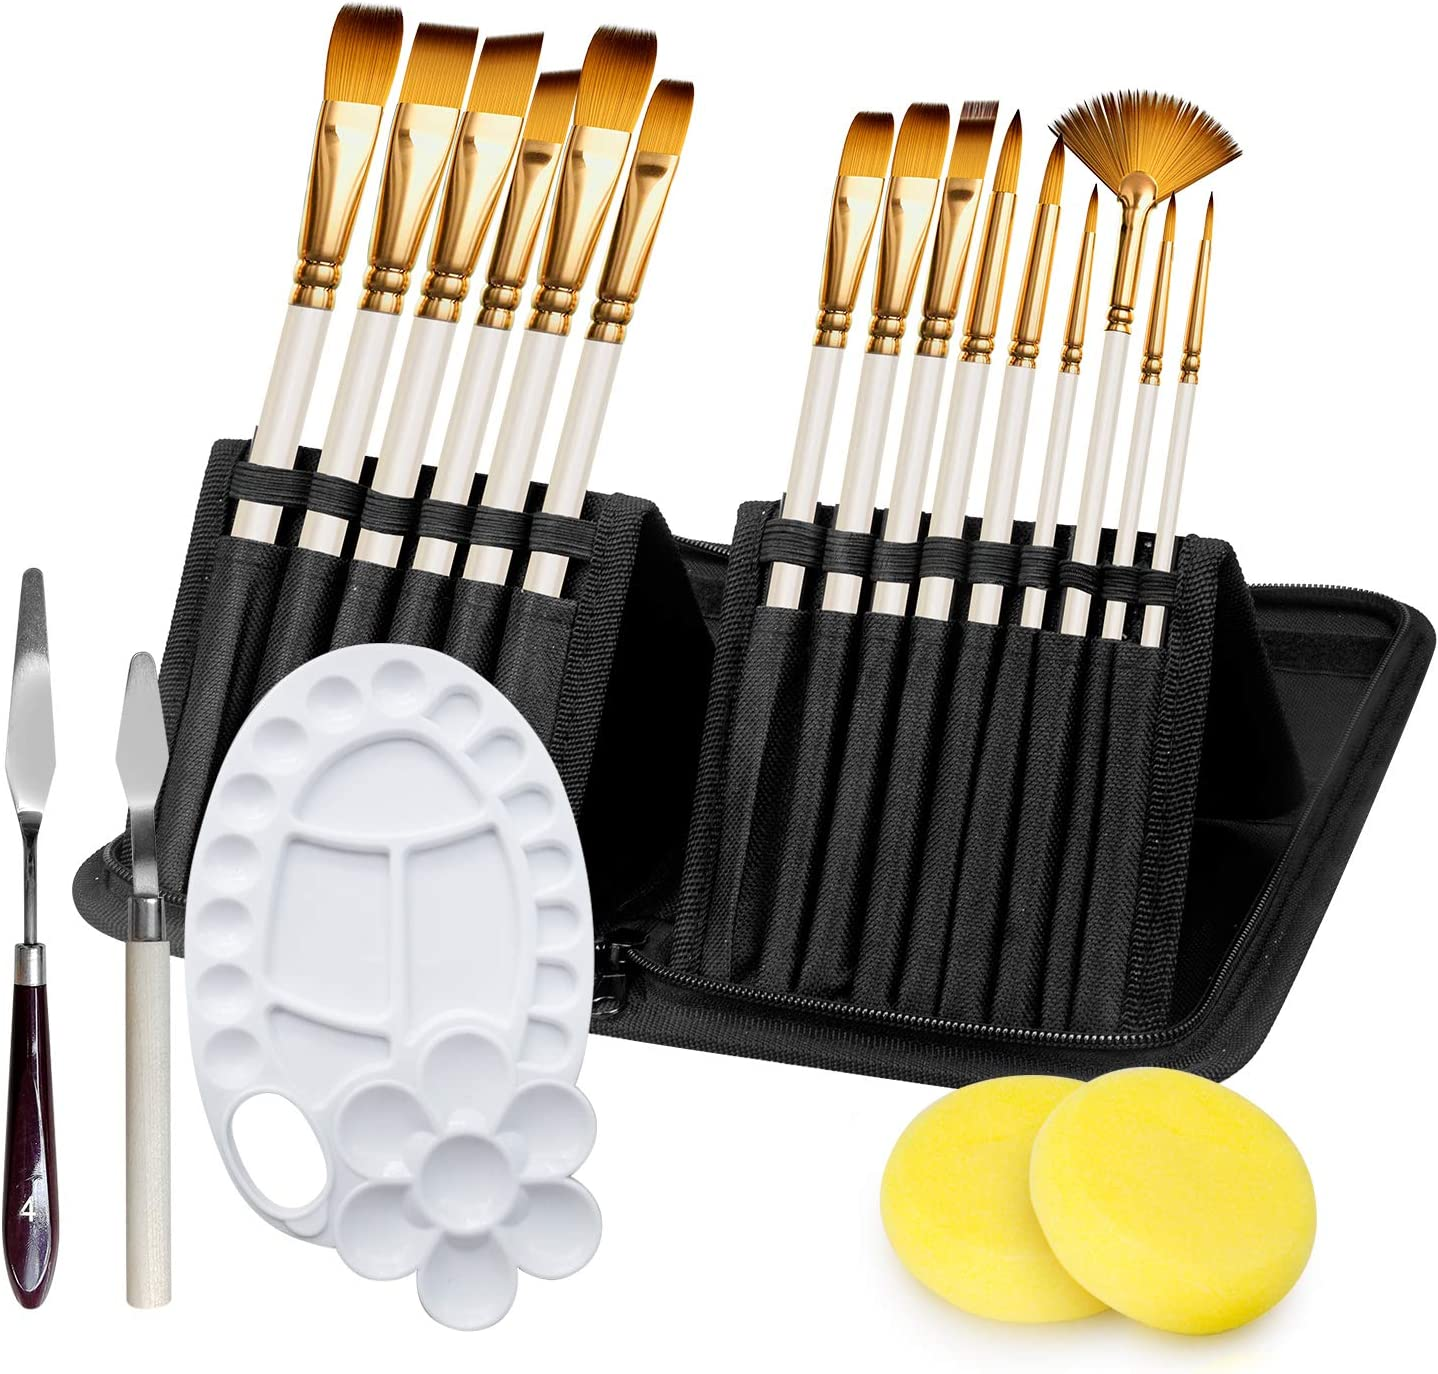 Adkwse Limited price Paint Brush Set for Acrylic Canvas Gouache Watercolor Mail order Oil